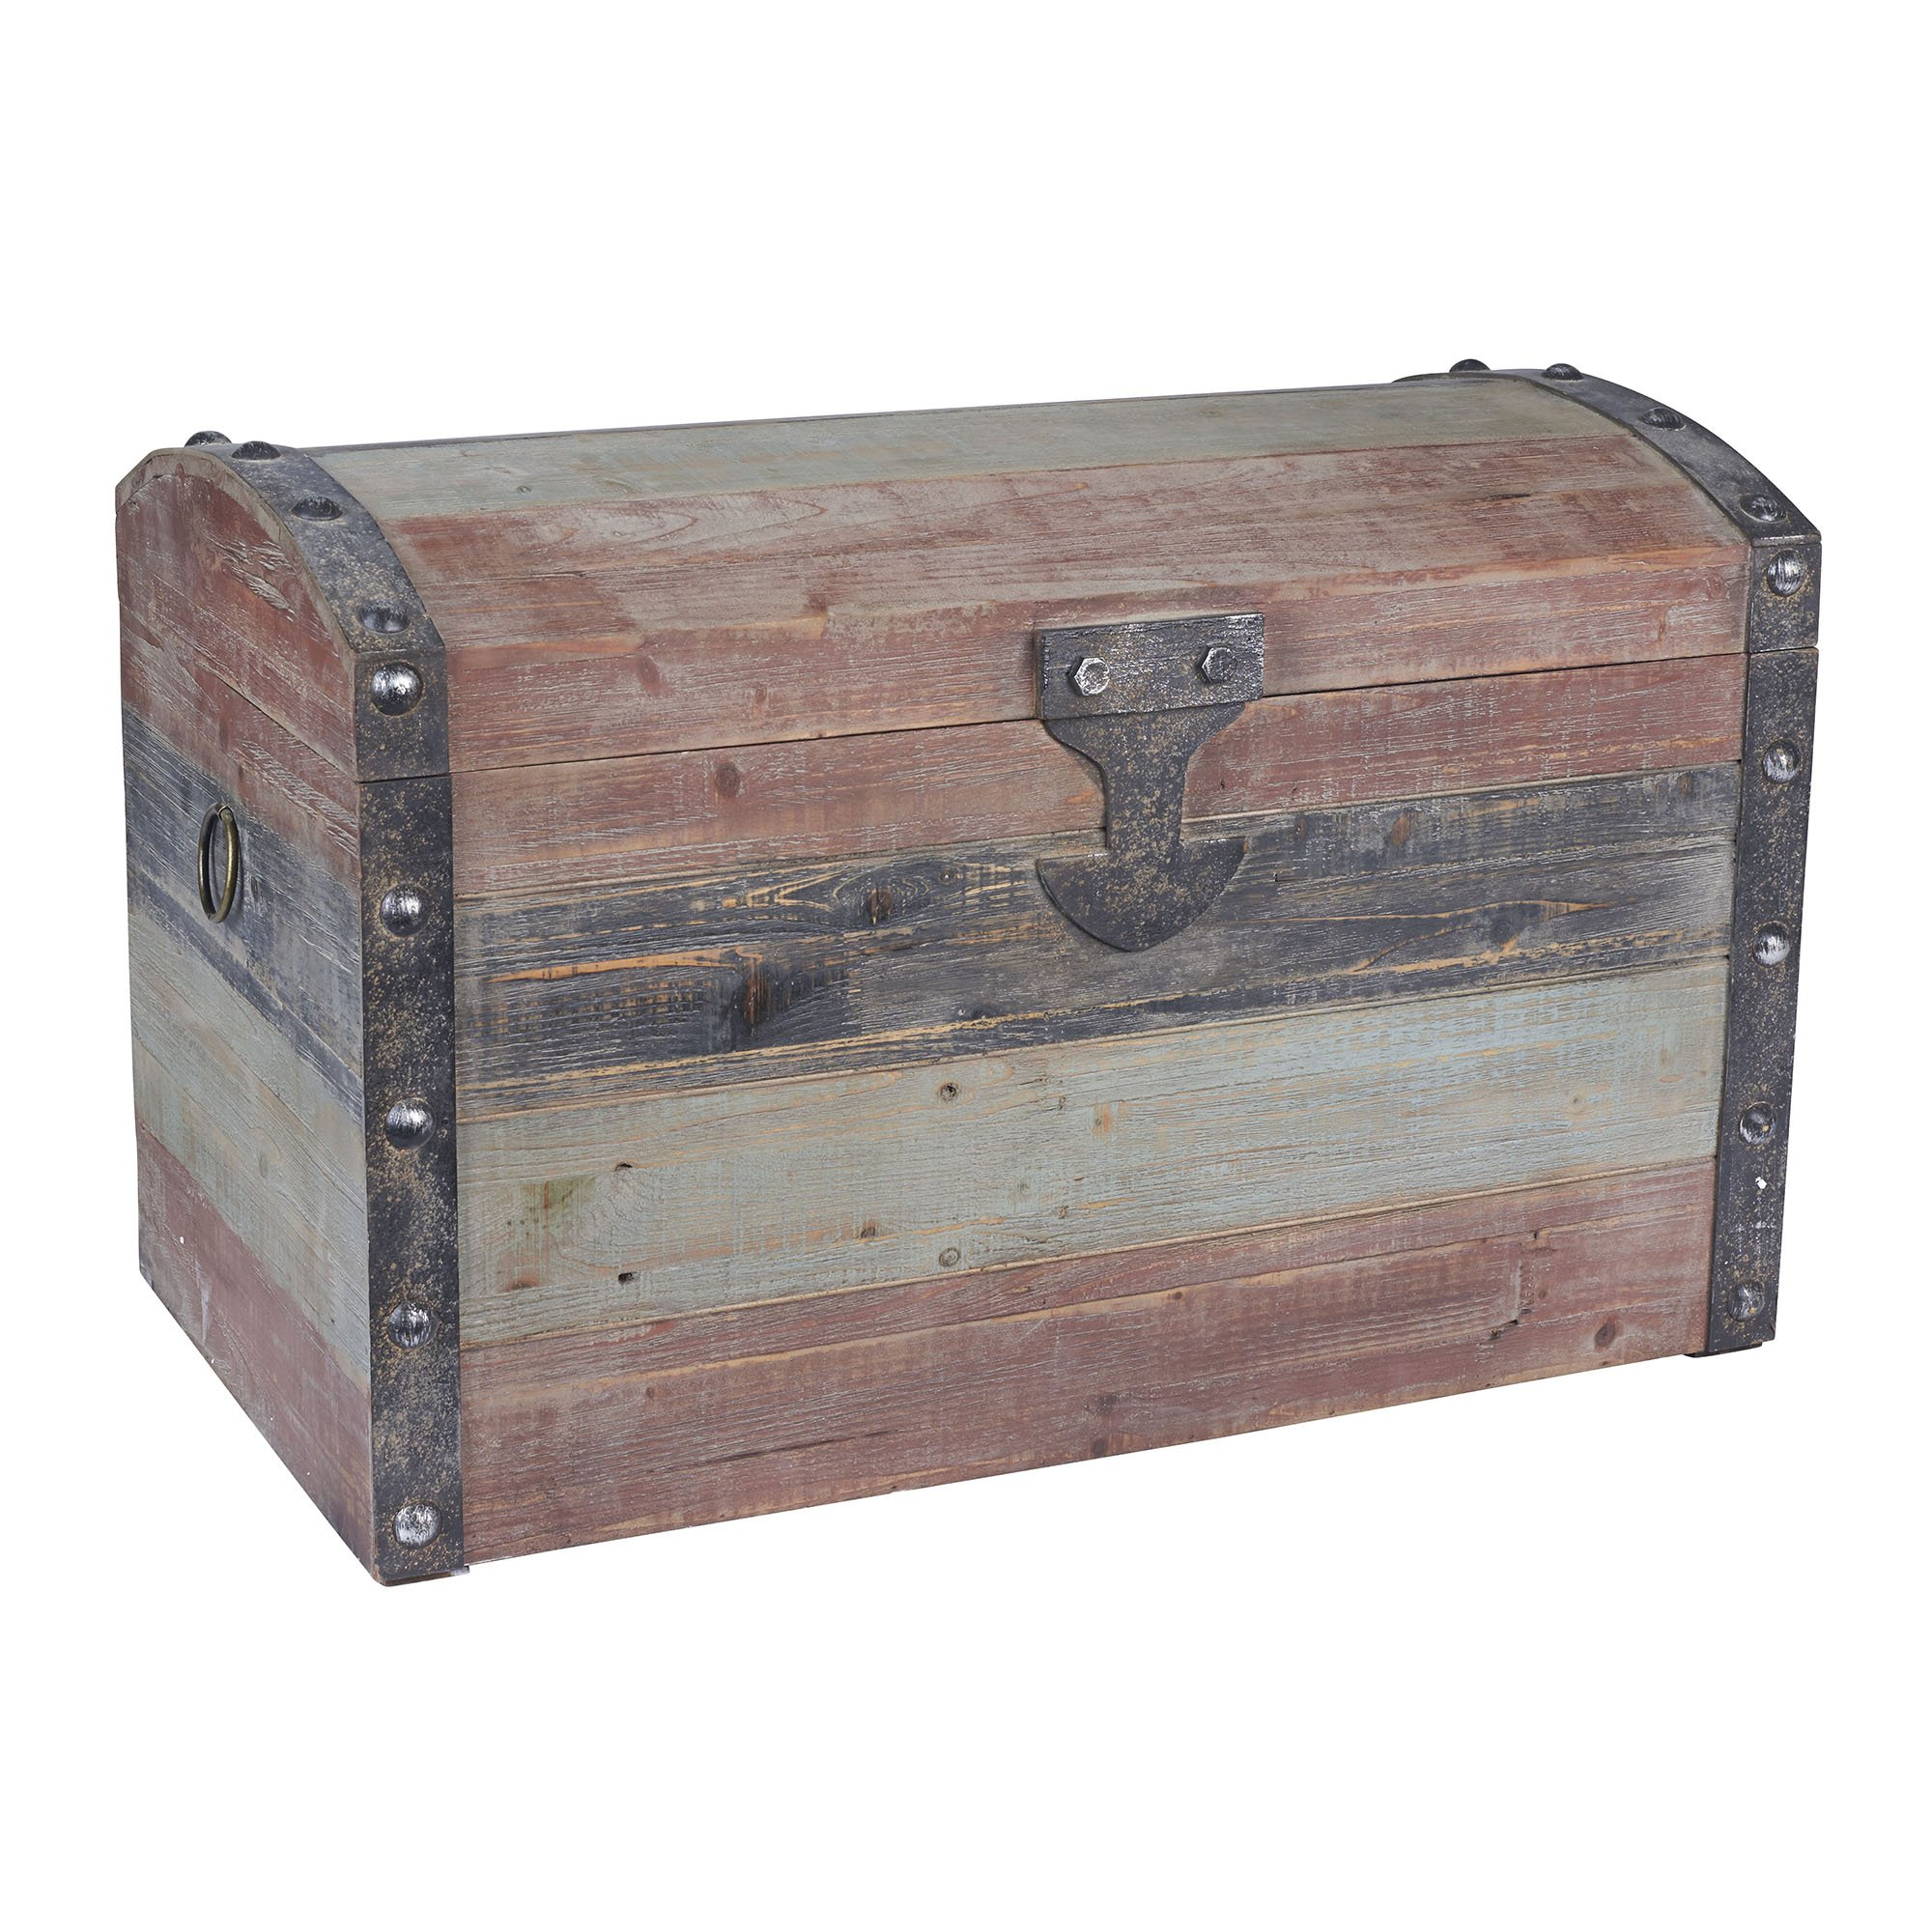 Household Essentials Stripped Weathered Wooden Storage Trunk, Large by Household Essentials